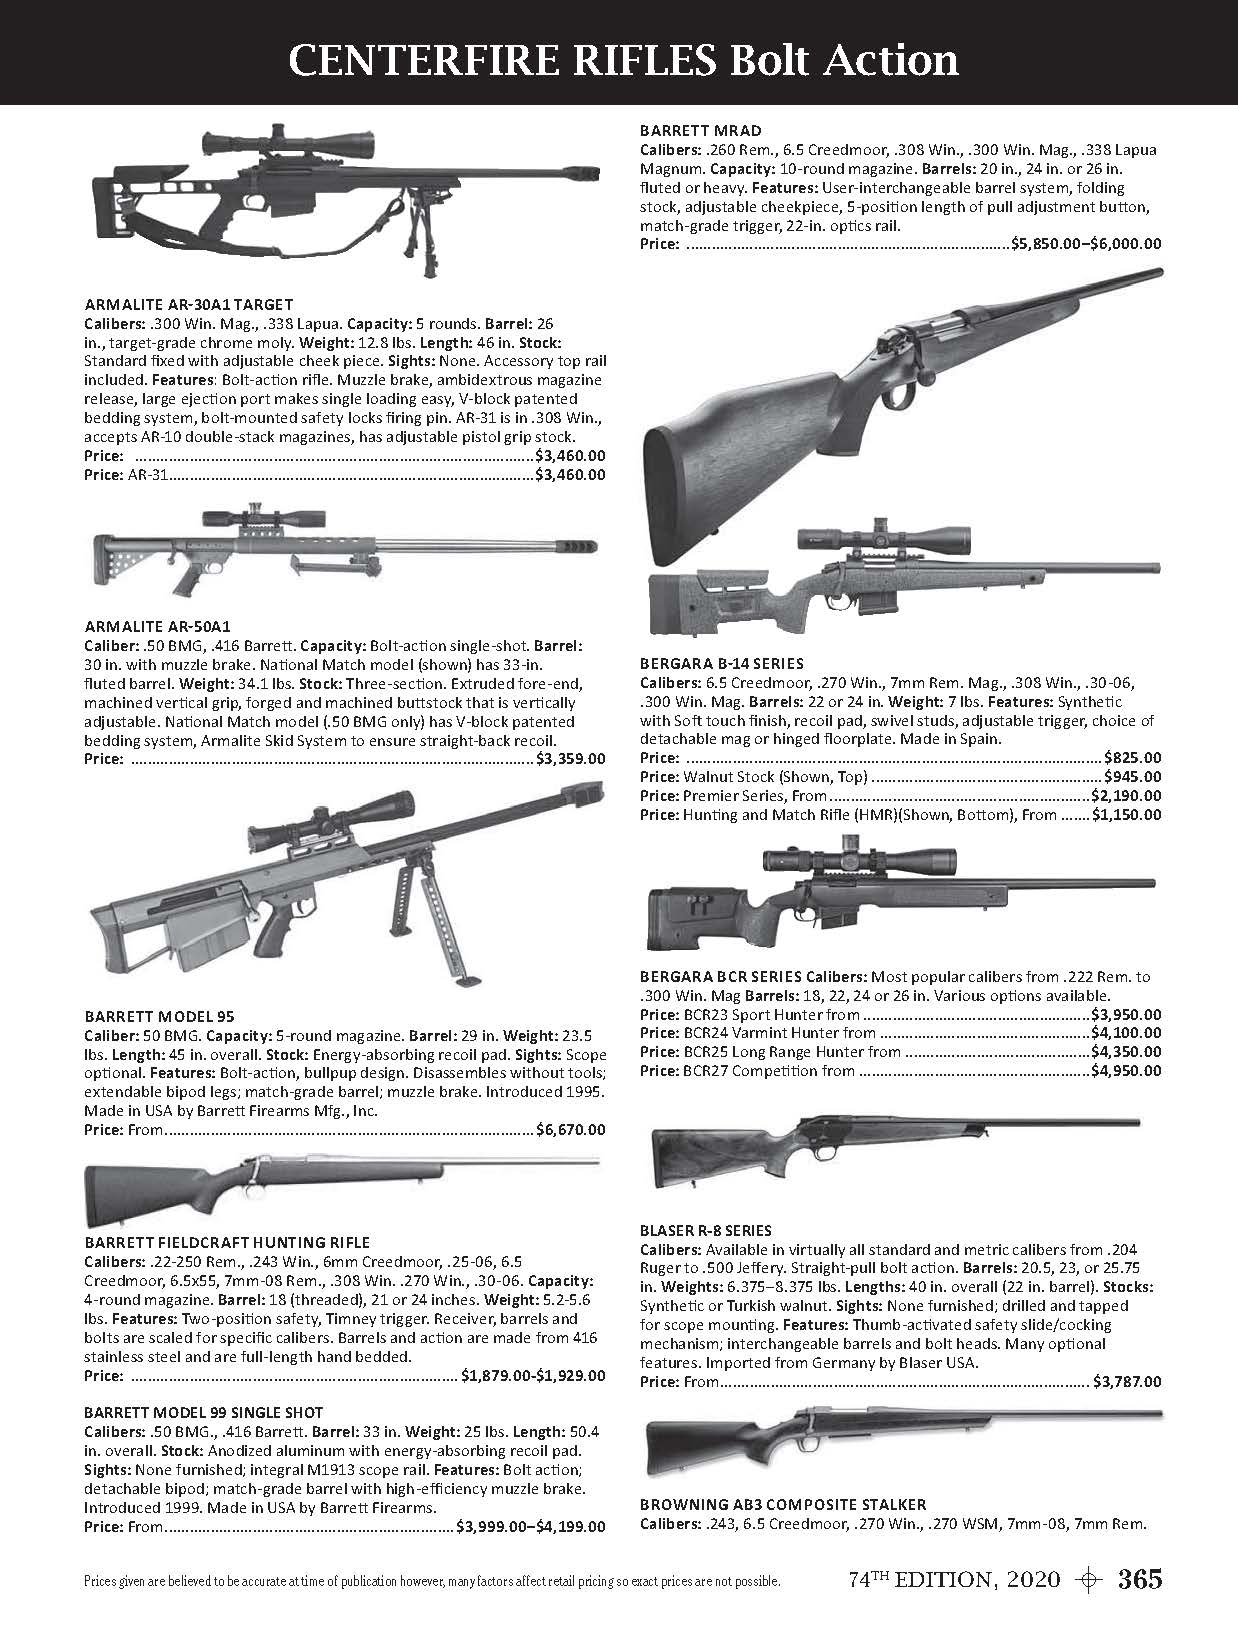 Gun Digest 2020, 74th Edition